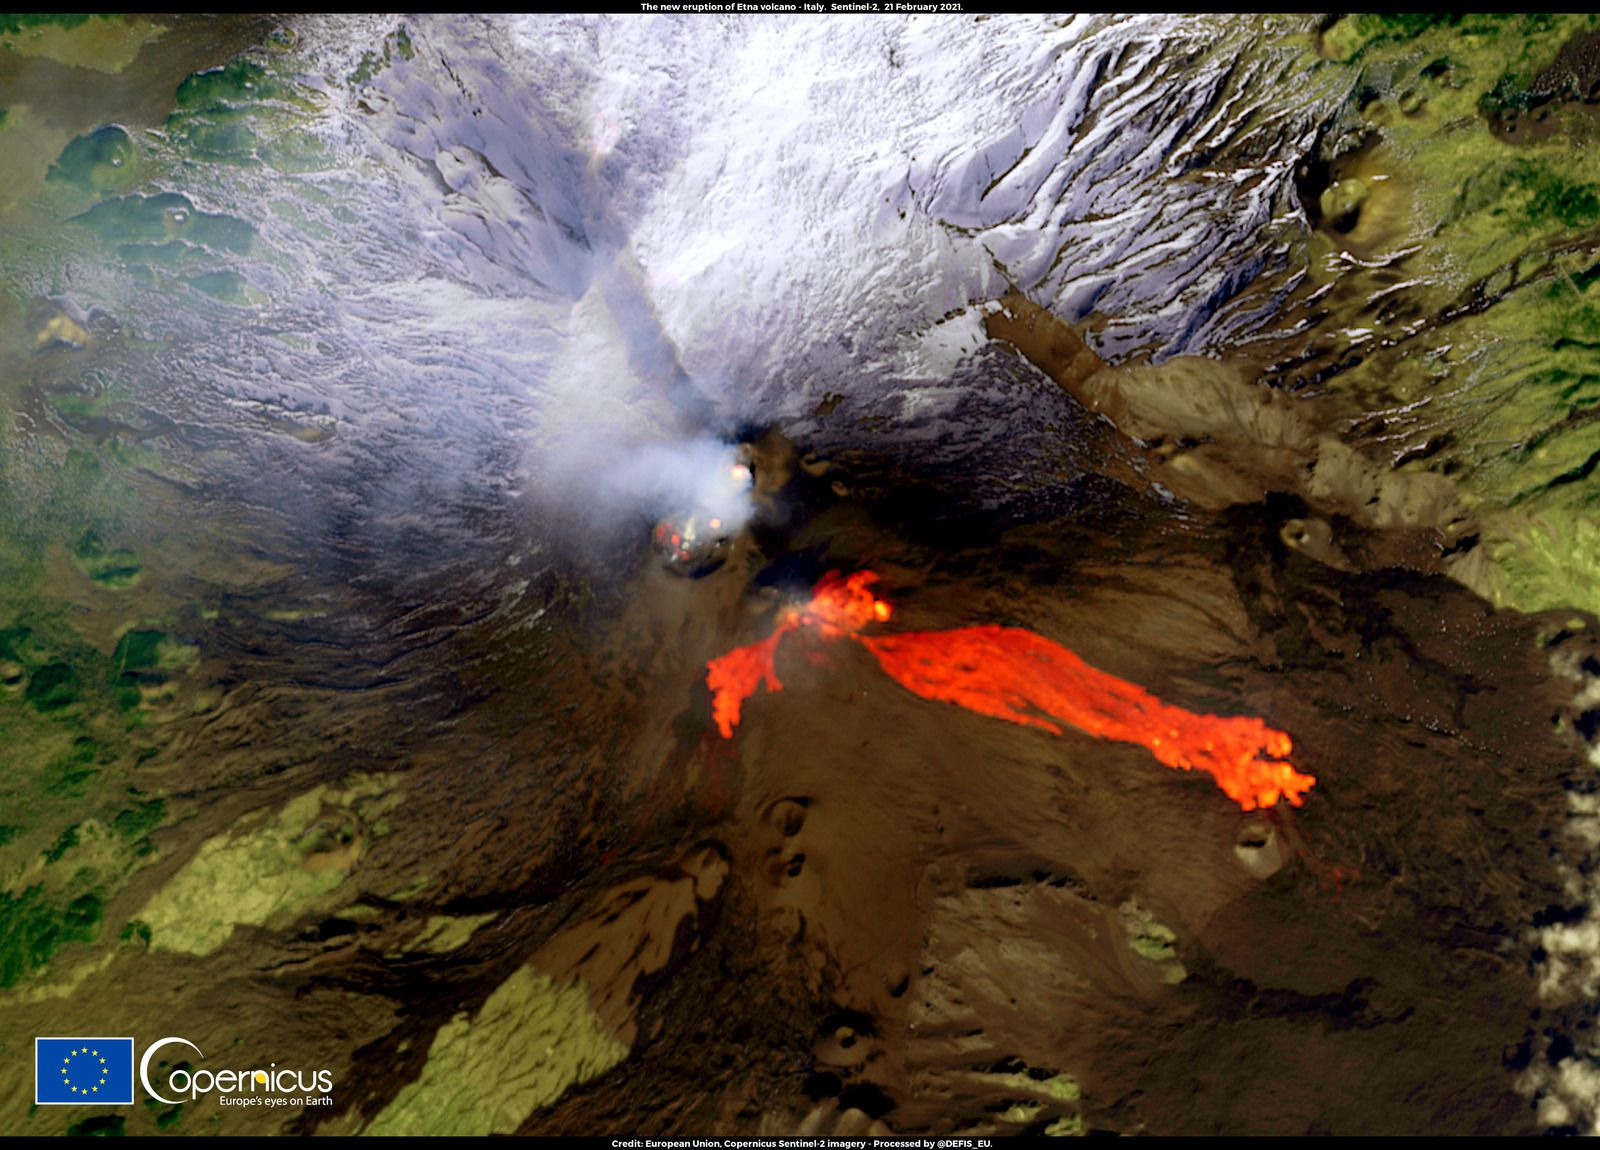 Etna - the SEC lava flows and the gases emitted by the other summit craters on 02.21.2021 - Doc. Copernicus / Sentinel-2 - un clic pour agrandir